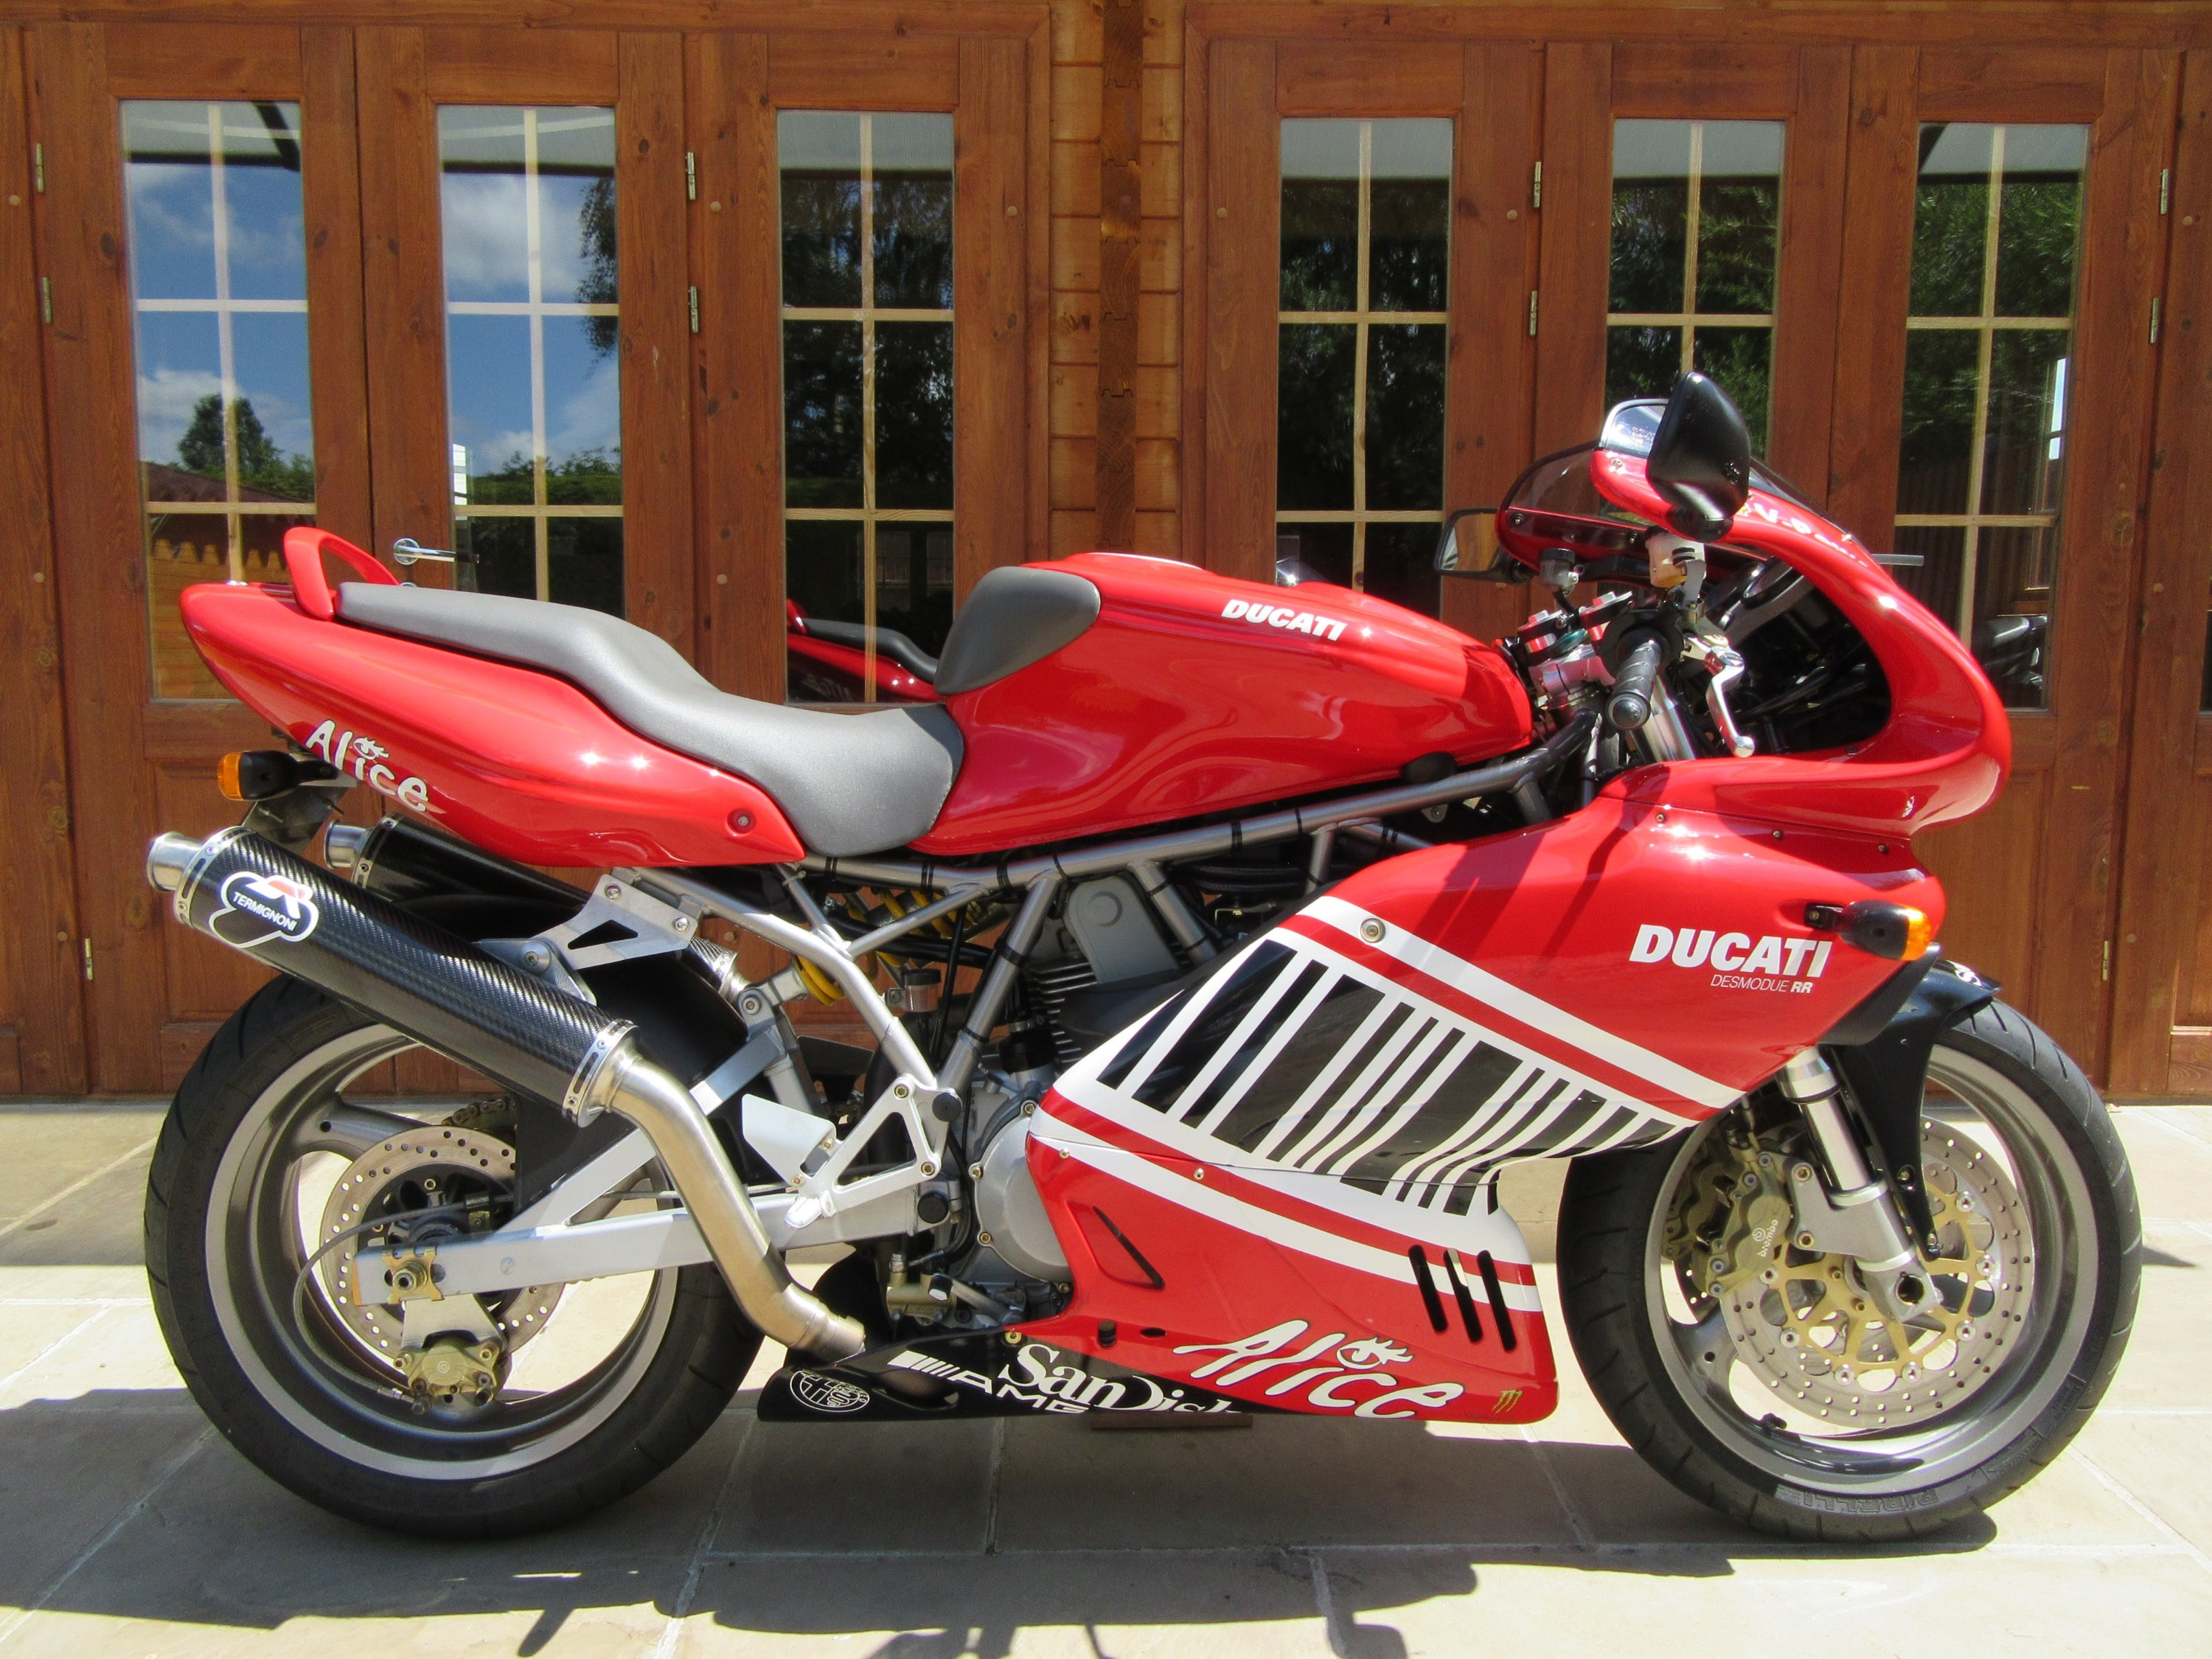 Ducati 900 SS Supersport – Only 6100 Miles, FSH, Termi's